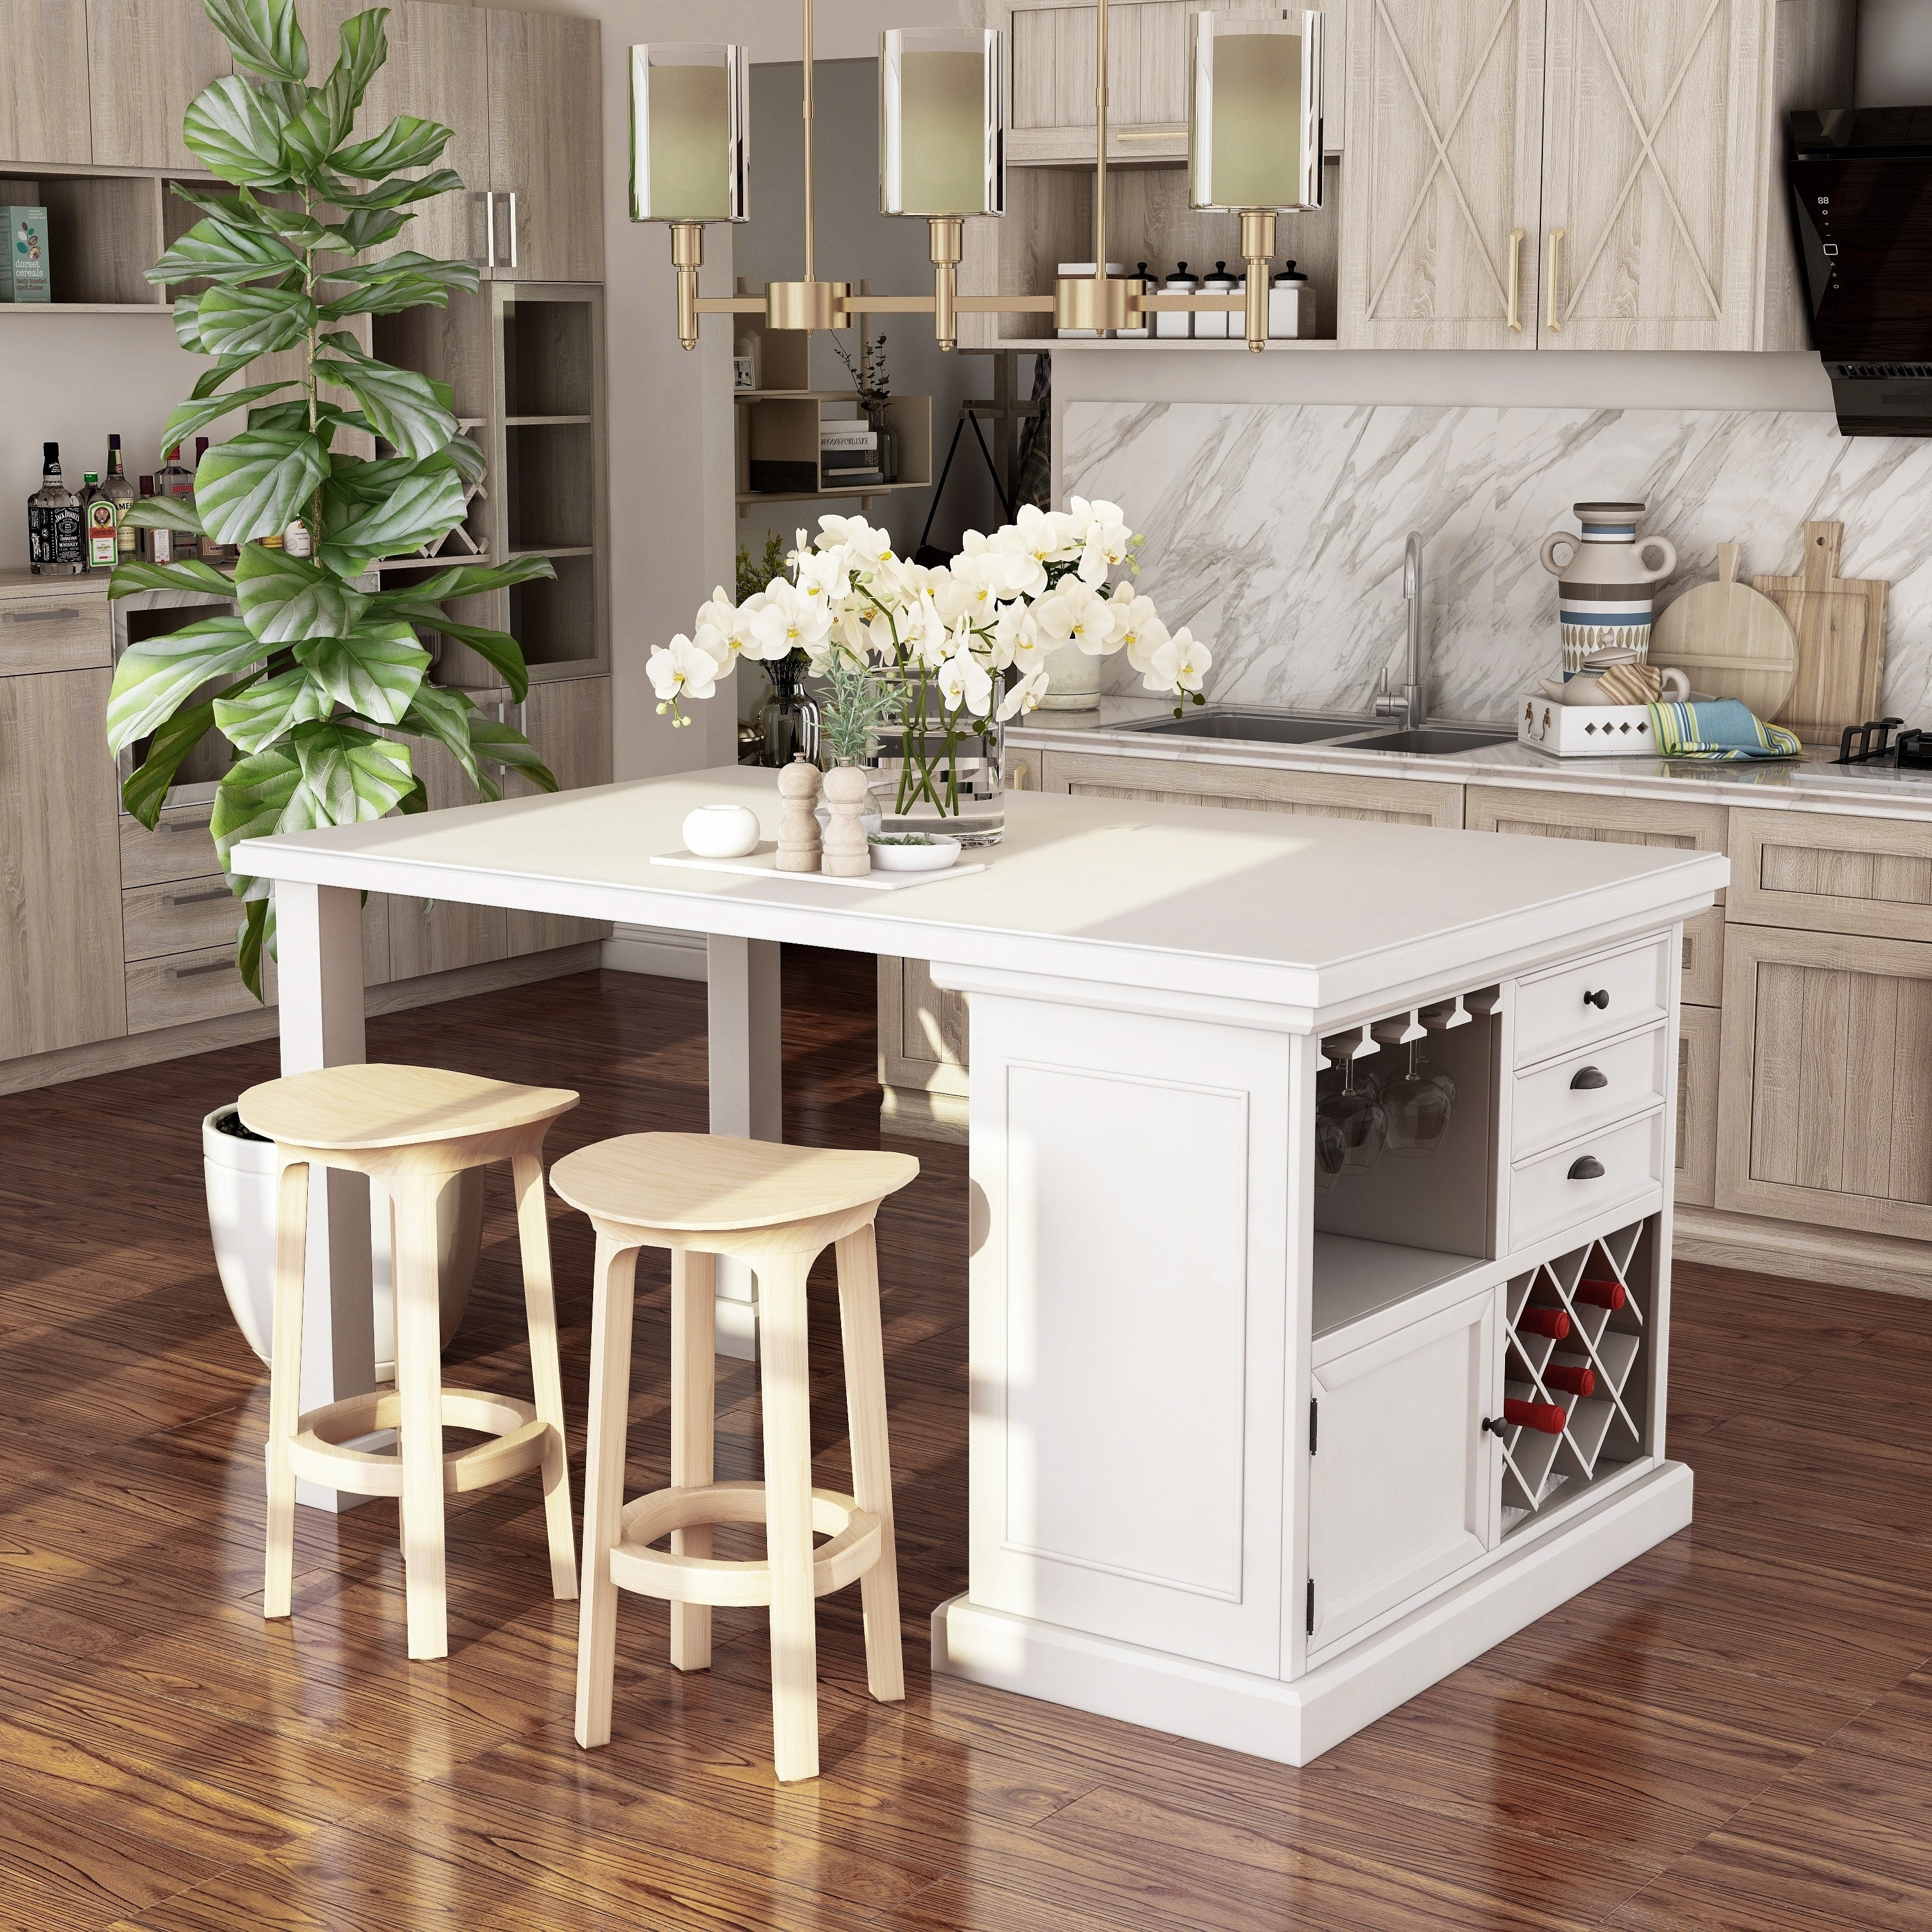 Overstock.com & Buy Kitchen Islands Online at Overstock | Our Best Kitchen Furniture ...